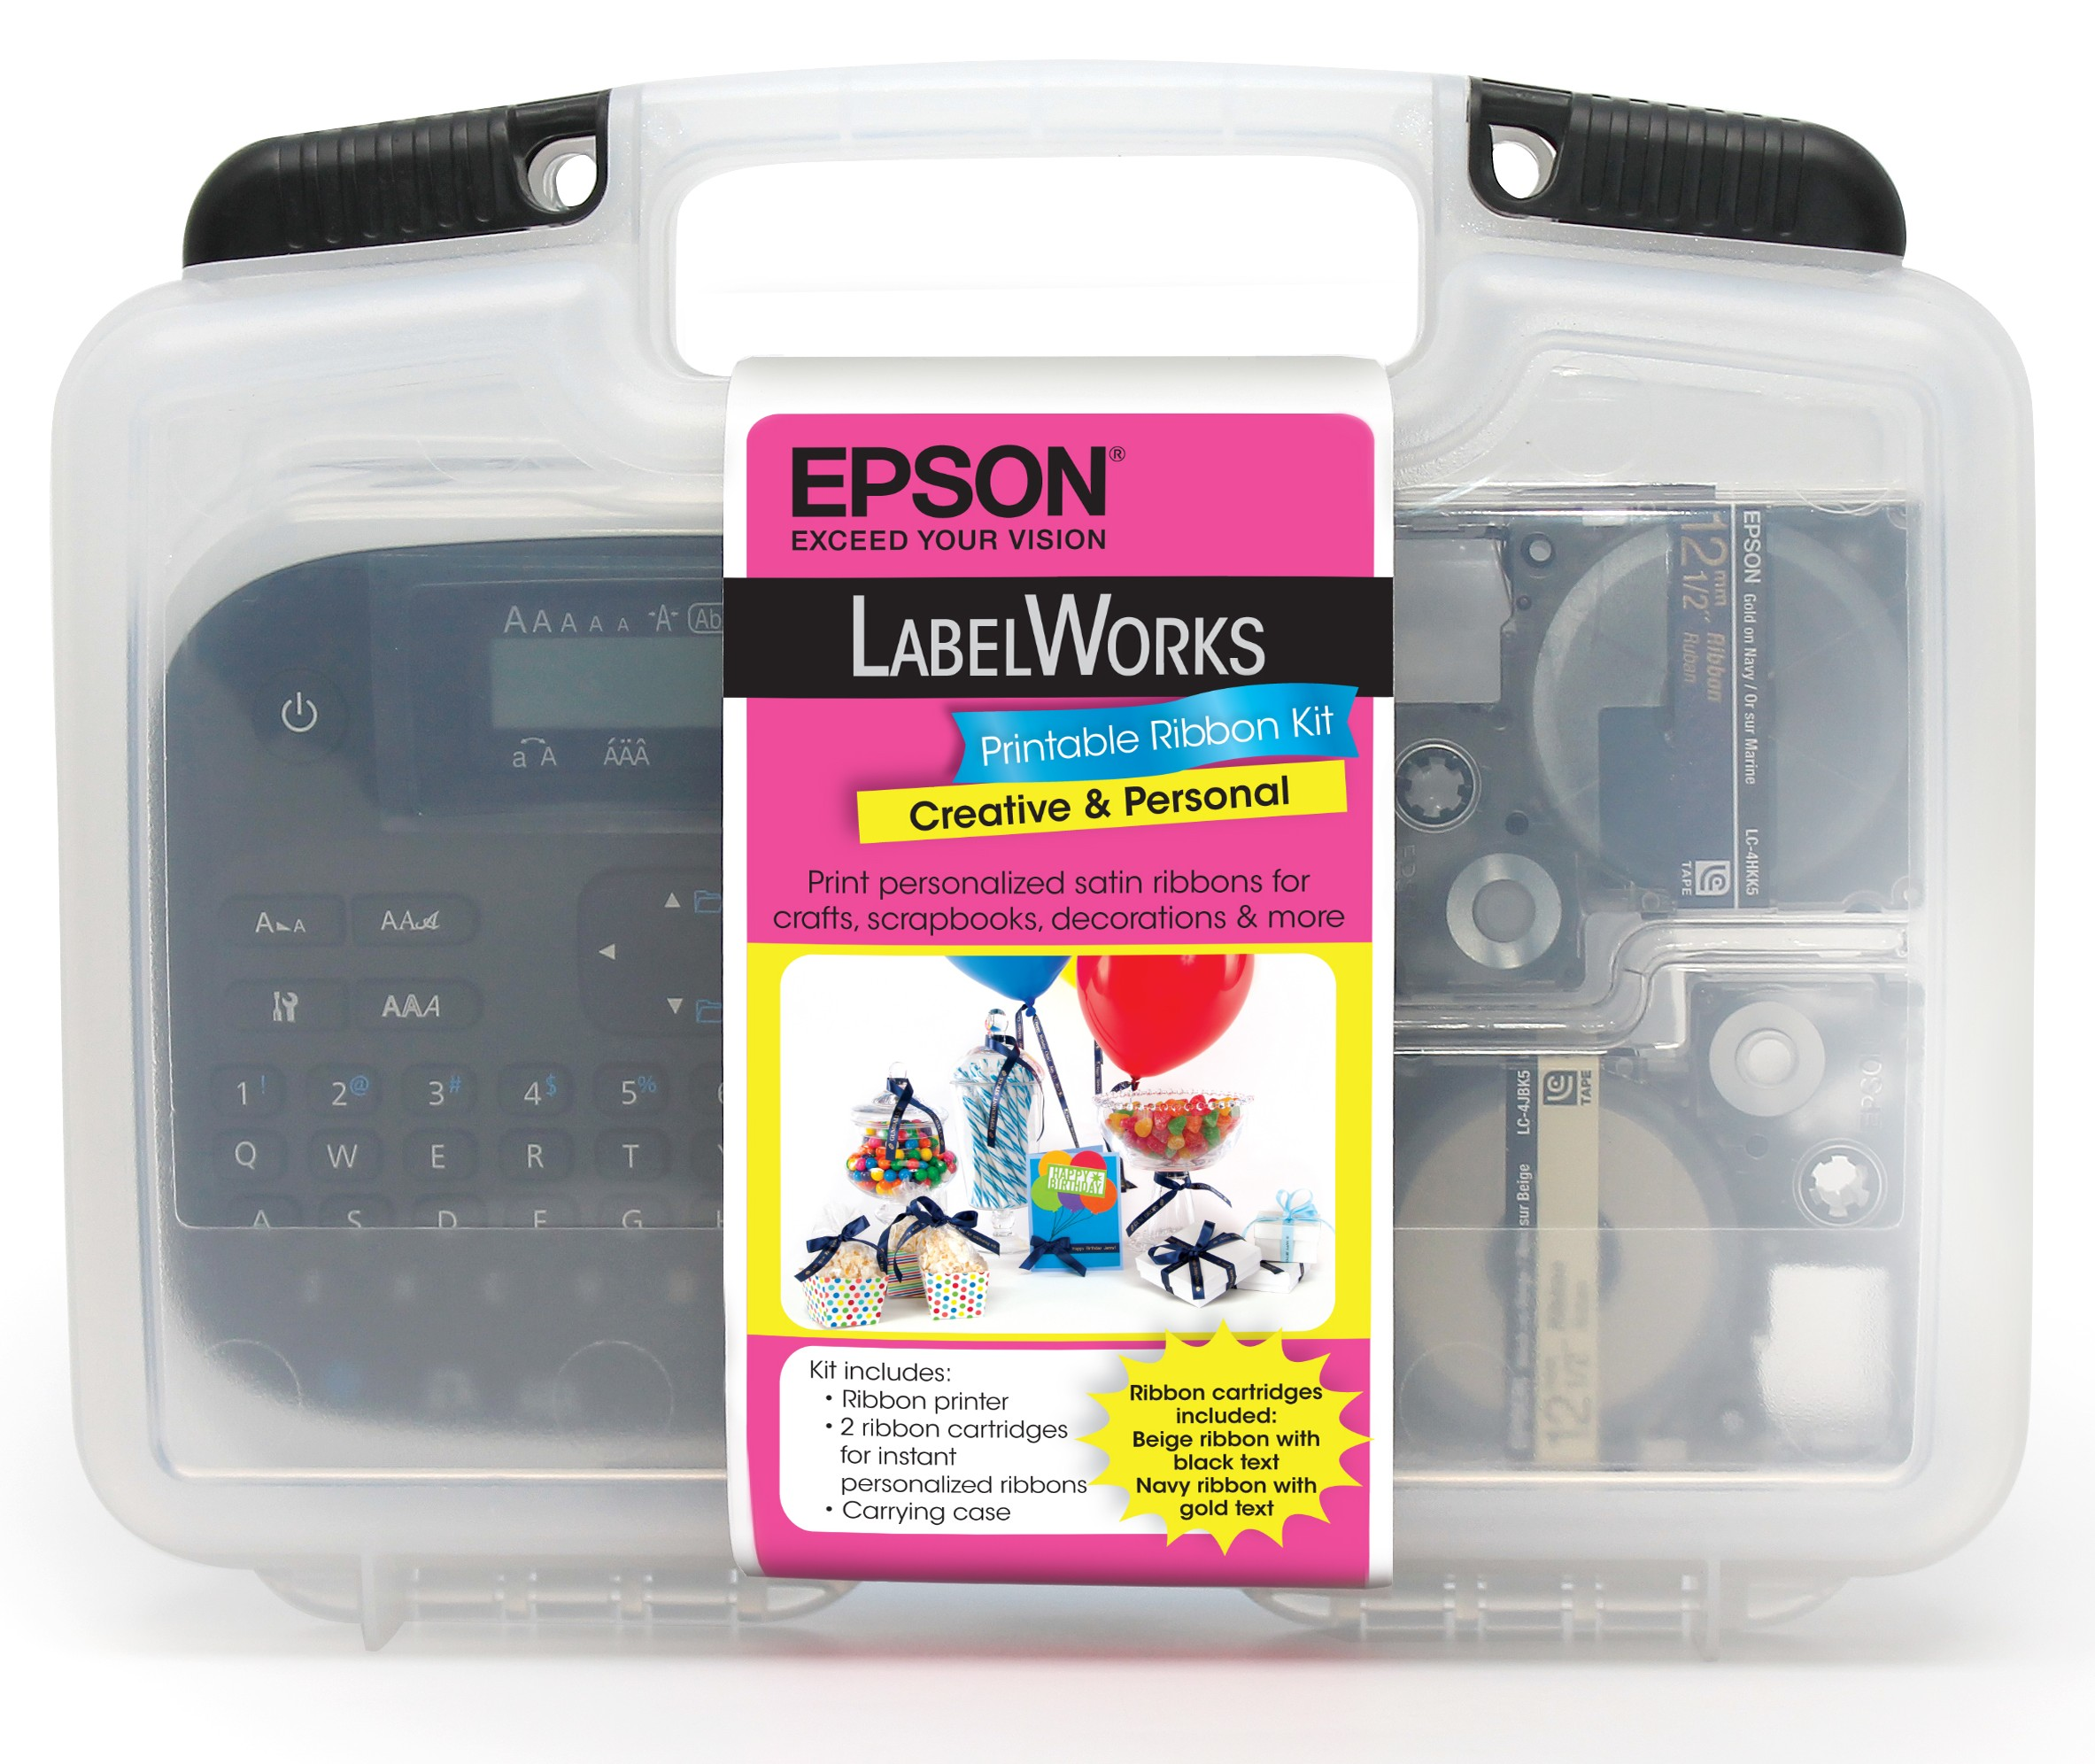 Epson LabelWorks Ribbon Kit